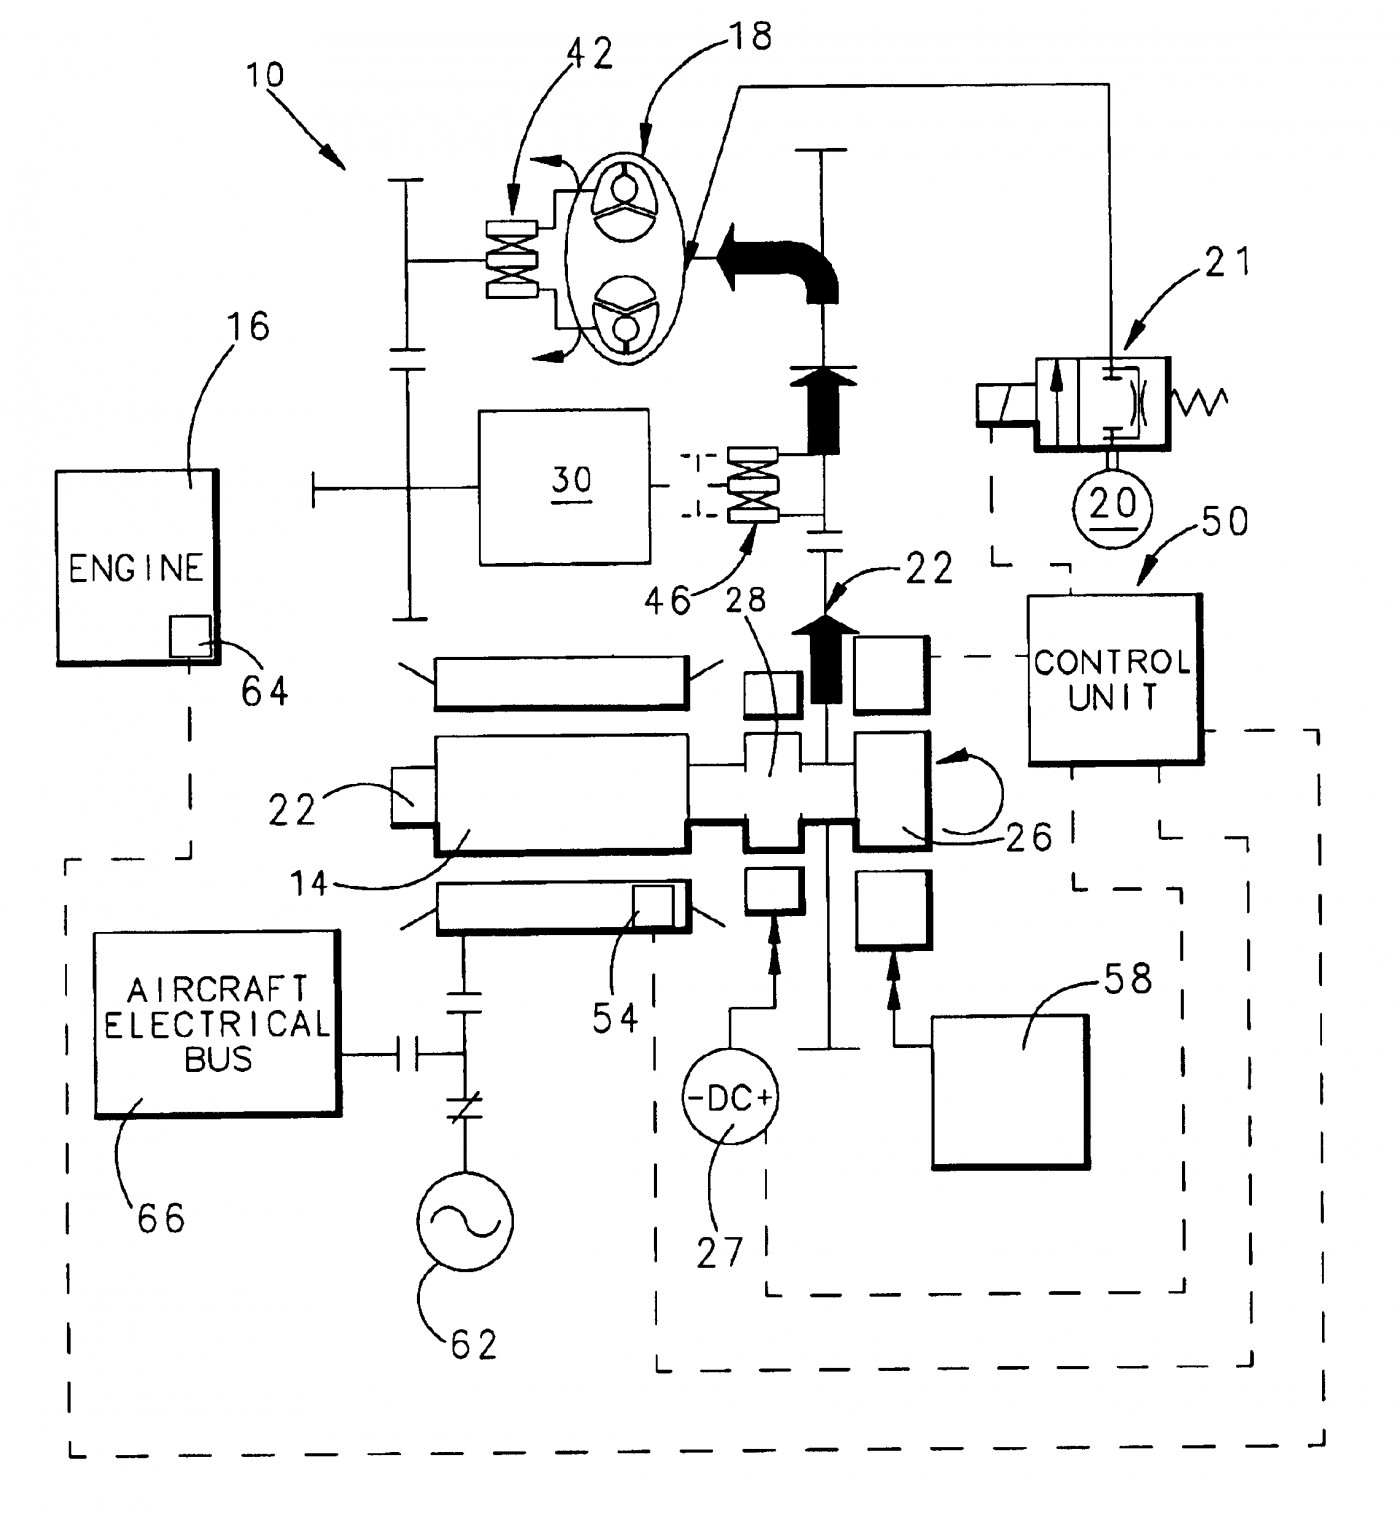 engine generator diagram